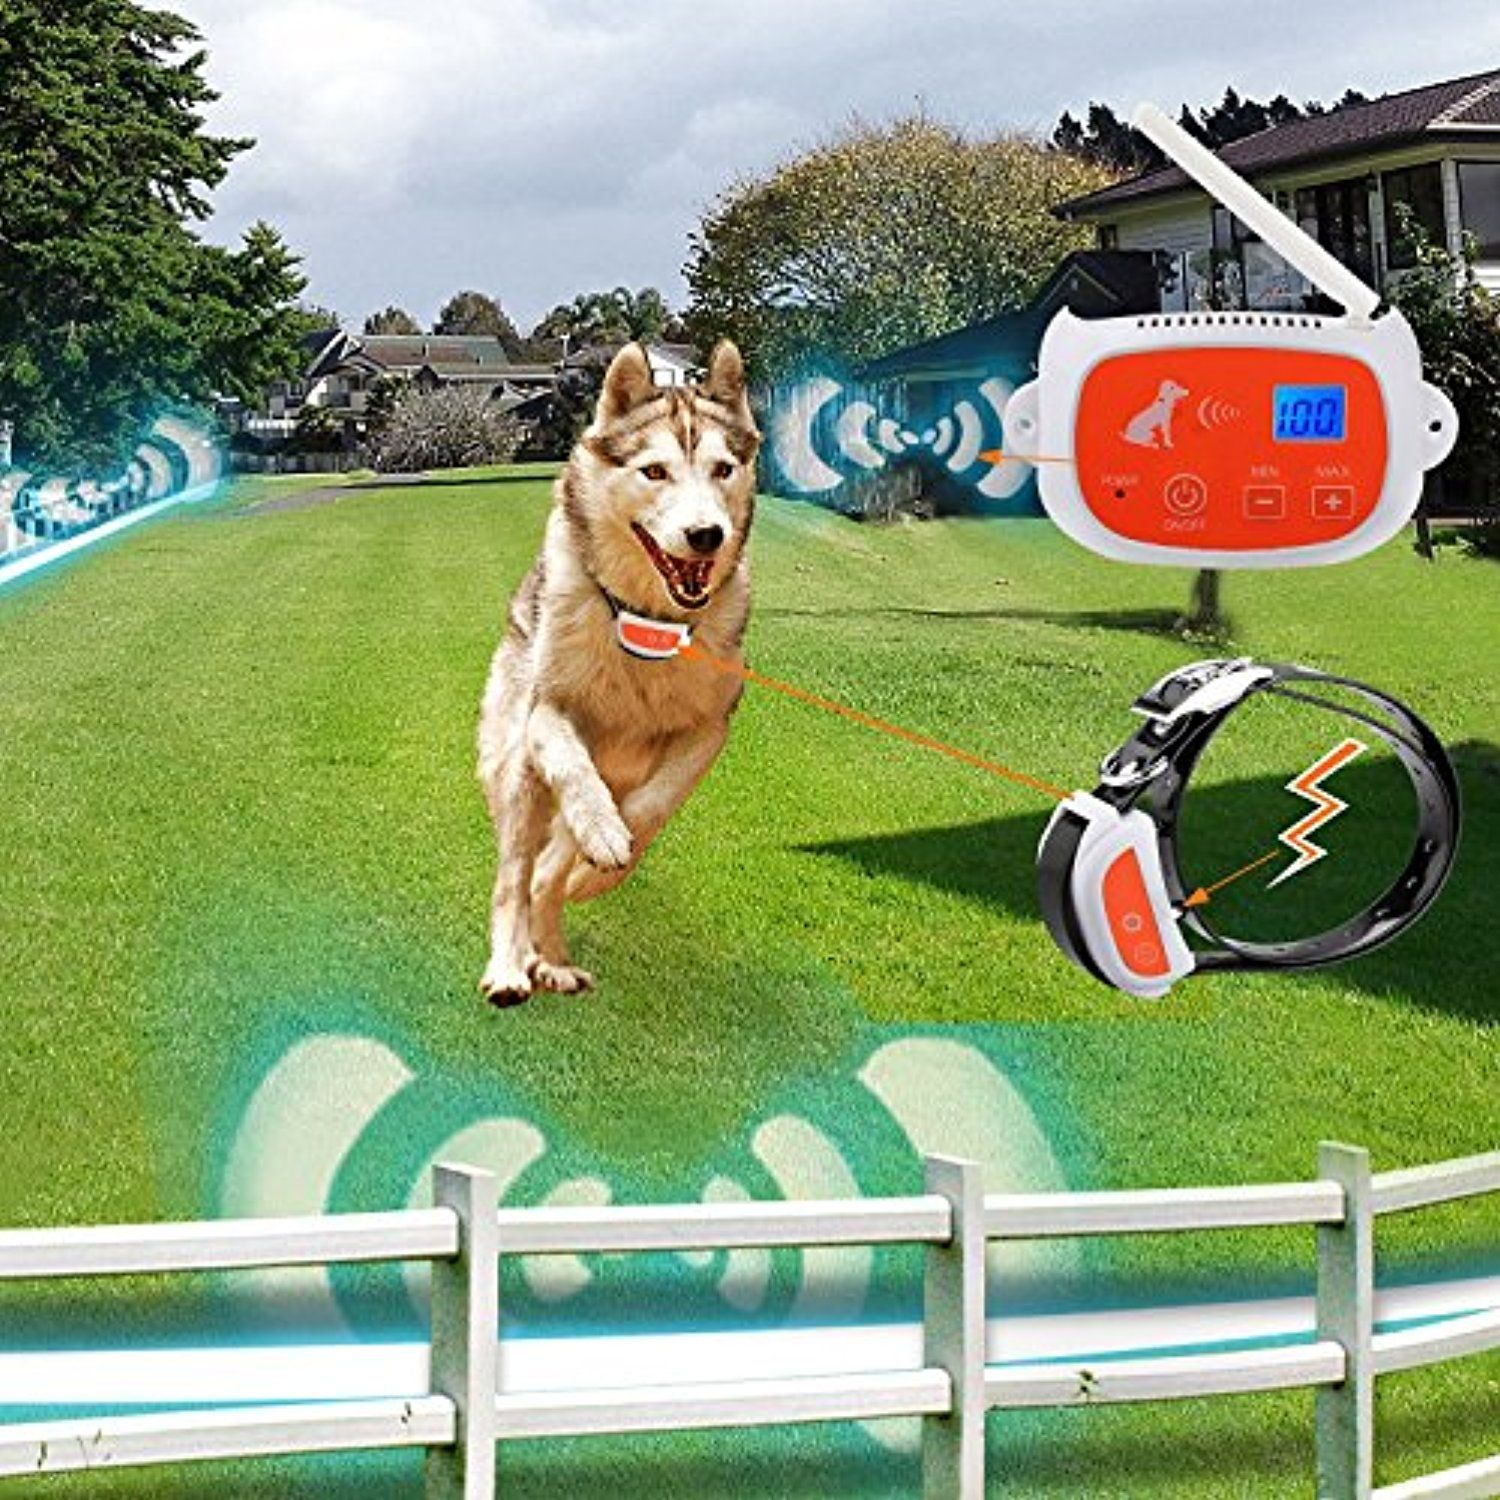 Portable Wireless 2 Dog Fence No Wires To Bury 800ft Containment System The 3nd Greneration Dt Wljk2 Check Out Thi Wireless Dog Fence Dog Fence Pet Fence